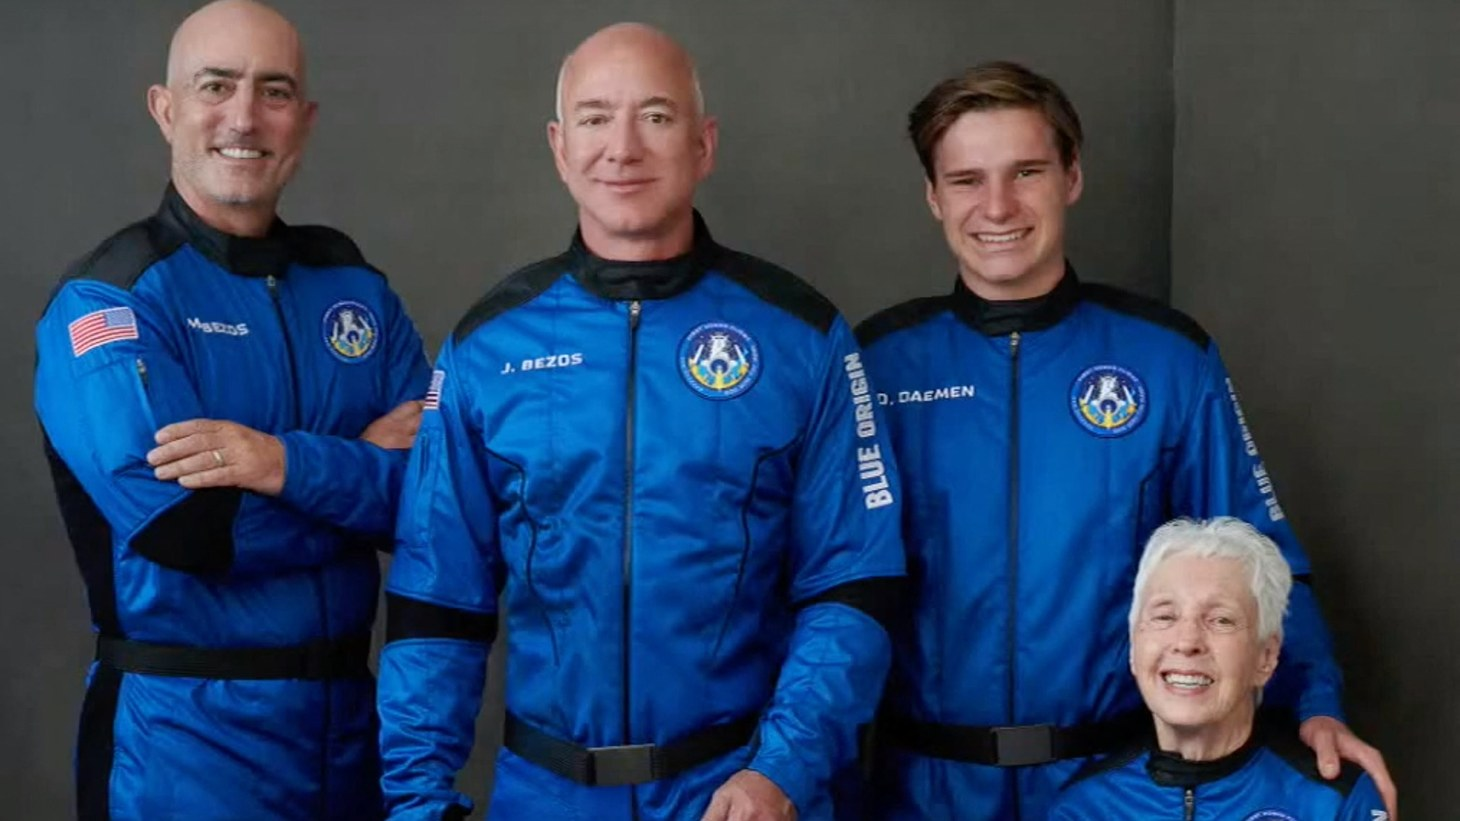 Jeff Bezos (second from left) stands next to his brother Mark Bezos (left), 82-year-old aviator Wally Funk (seated), and 18-year-old Oliver Daemen (right) of the Netherlands. All are part of the Blue Origin team being sent into space. July 20, 2021.